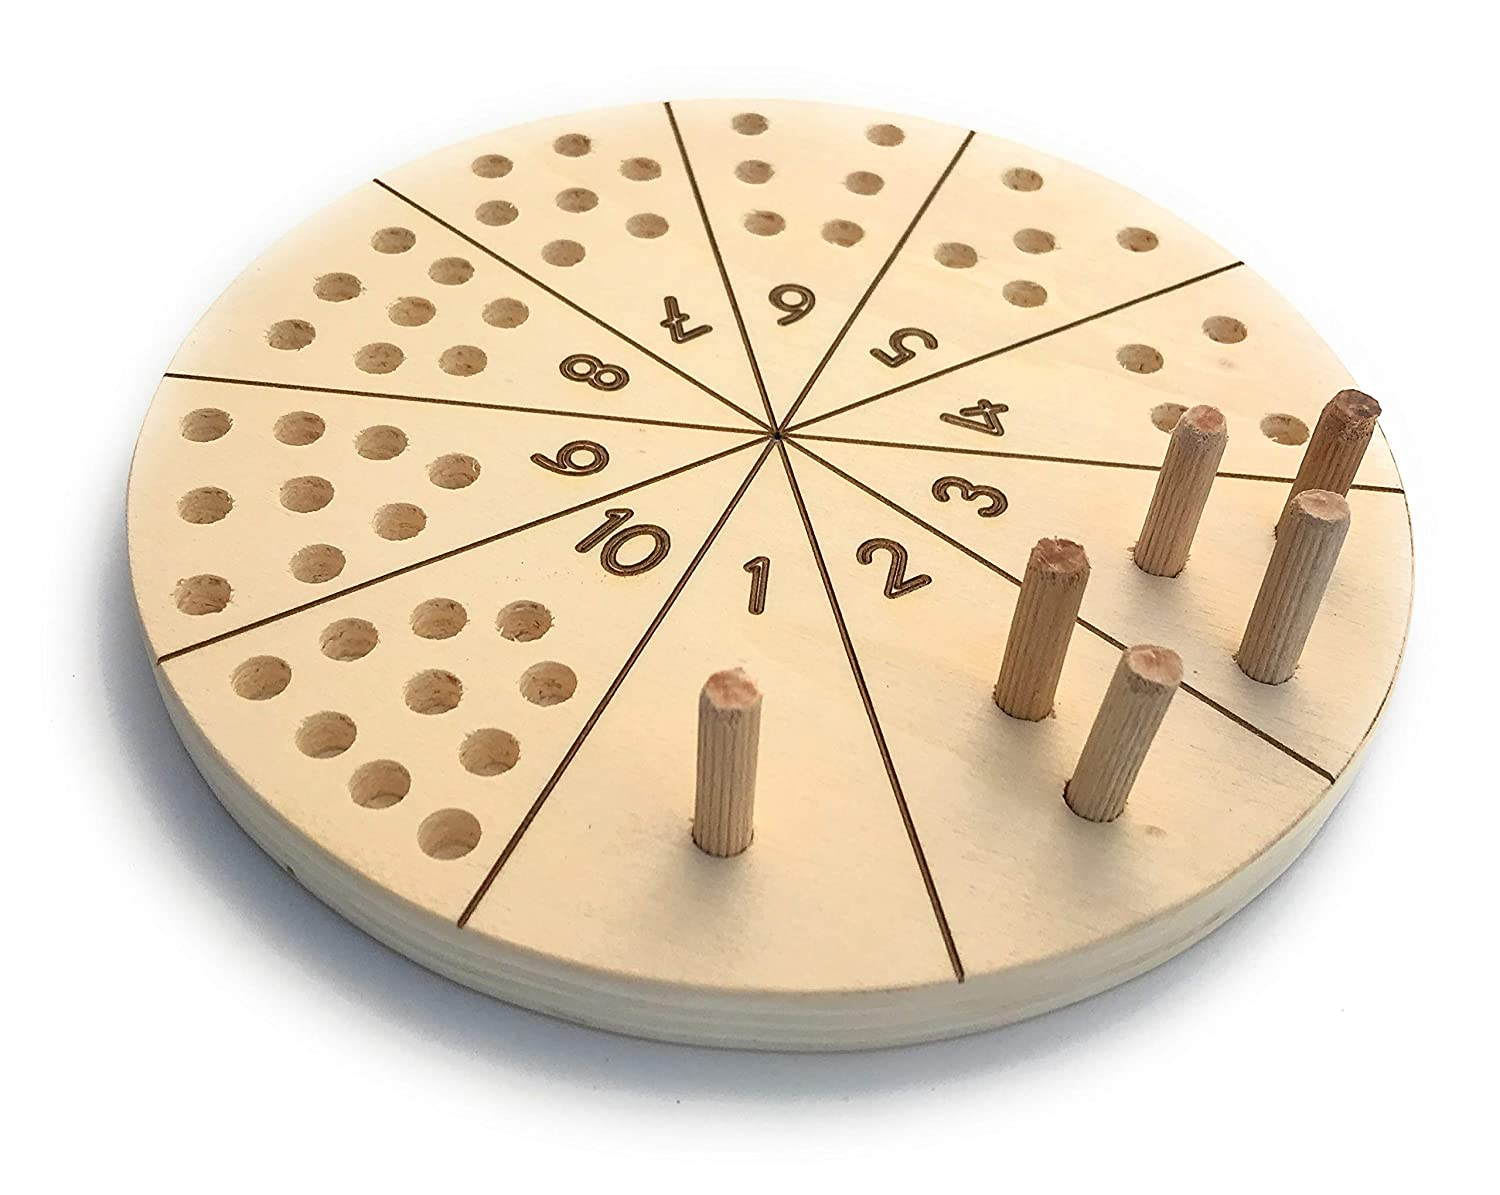 Number counting board, Montessori counting board, Ten board, Numbers board, Handmade learning toy, Board game, Montessori materials